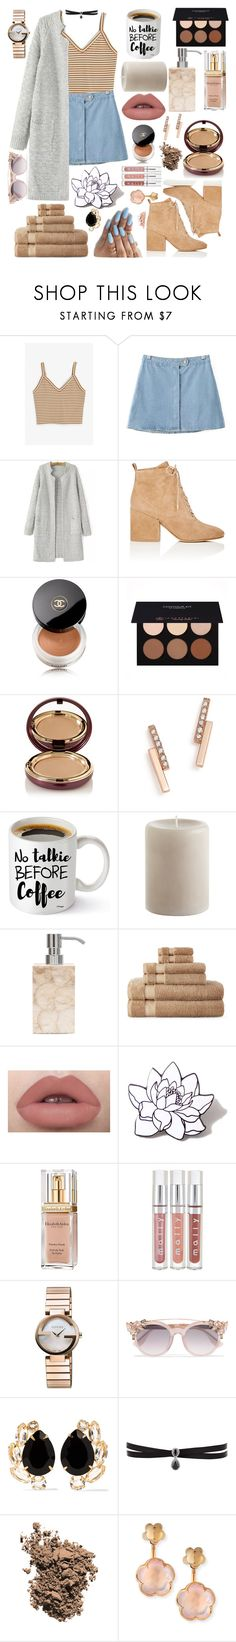 """Good morning//"" by arianaclq0129 ❤ liked on Polyvore featuring Monki, Chicnova Fashion, Sam Edelman, Chanel, Anastasia Beverly Hills, Wander Beauty, ZoÃ« Chicco, Pier 1 Imports, Pigeon & Poodle and Royal Velvet"